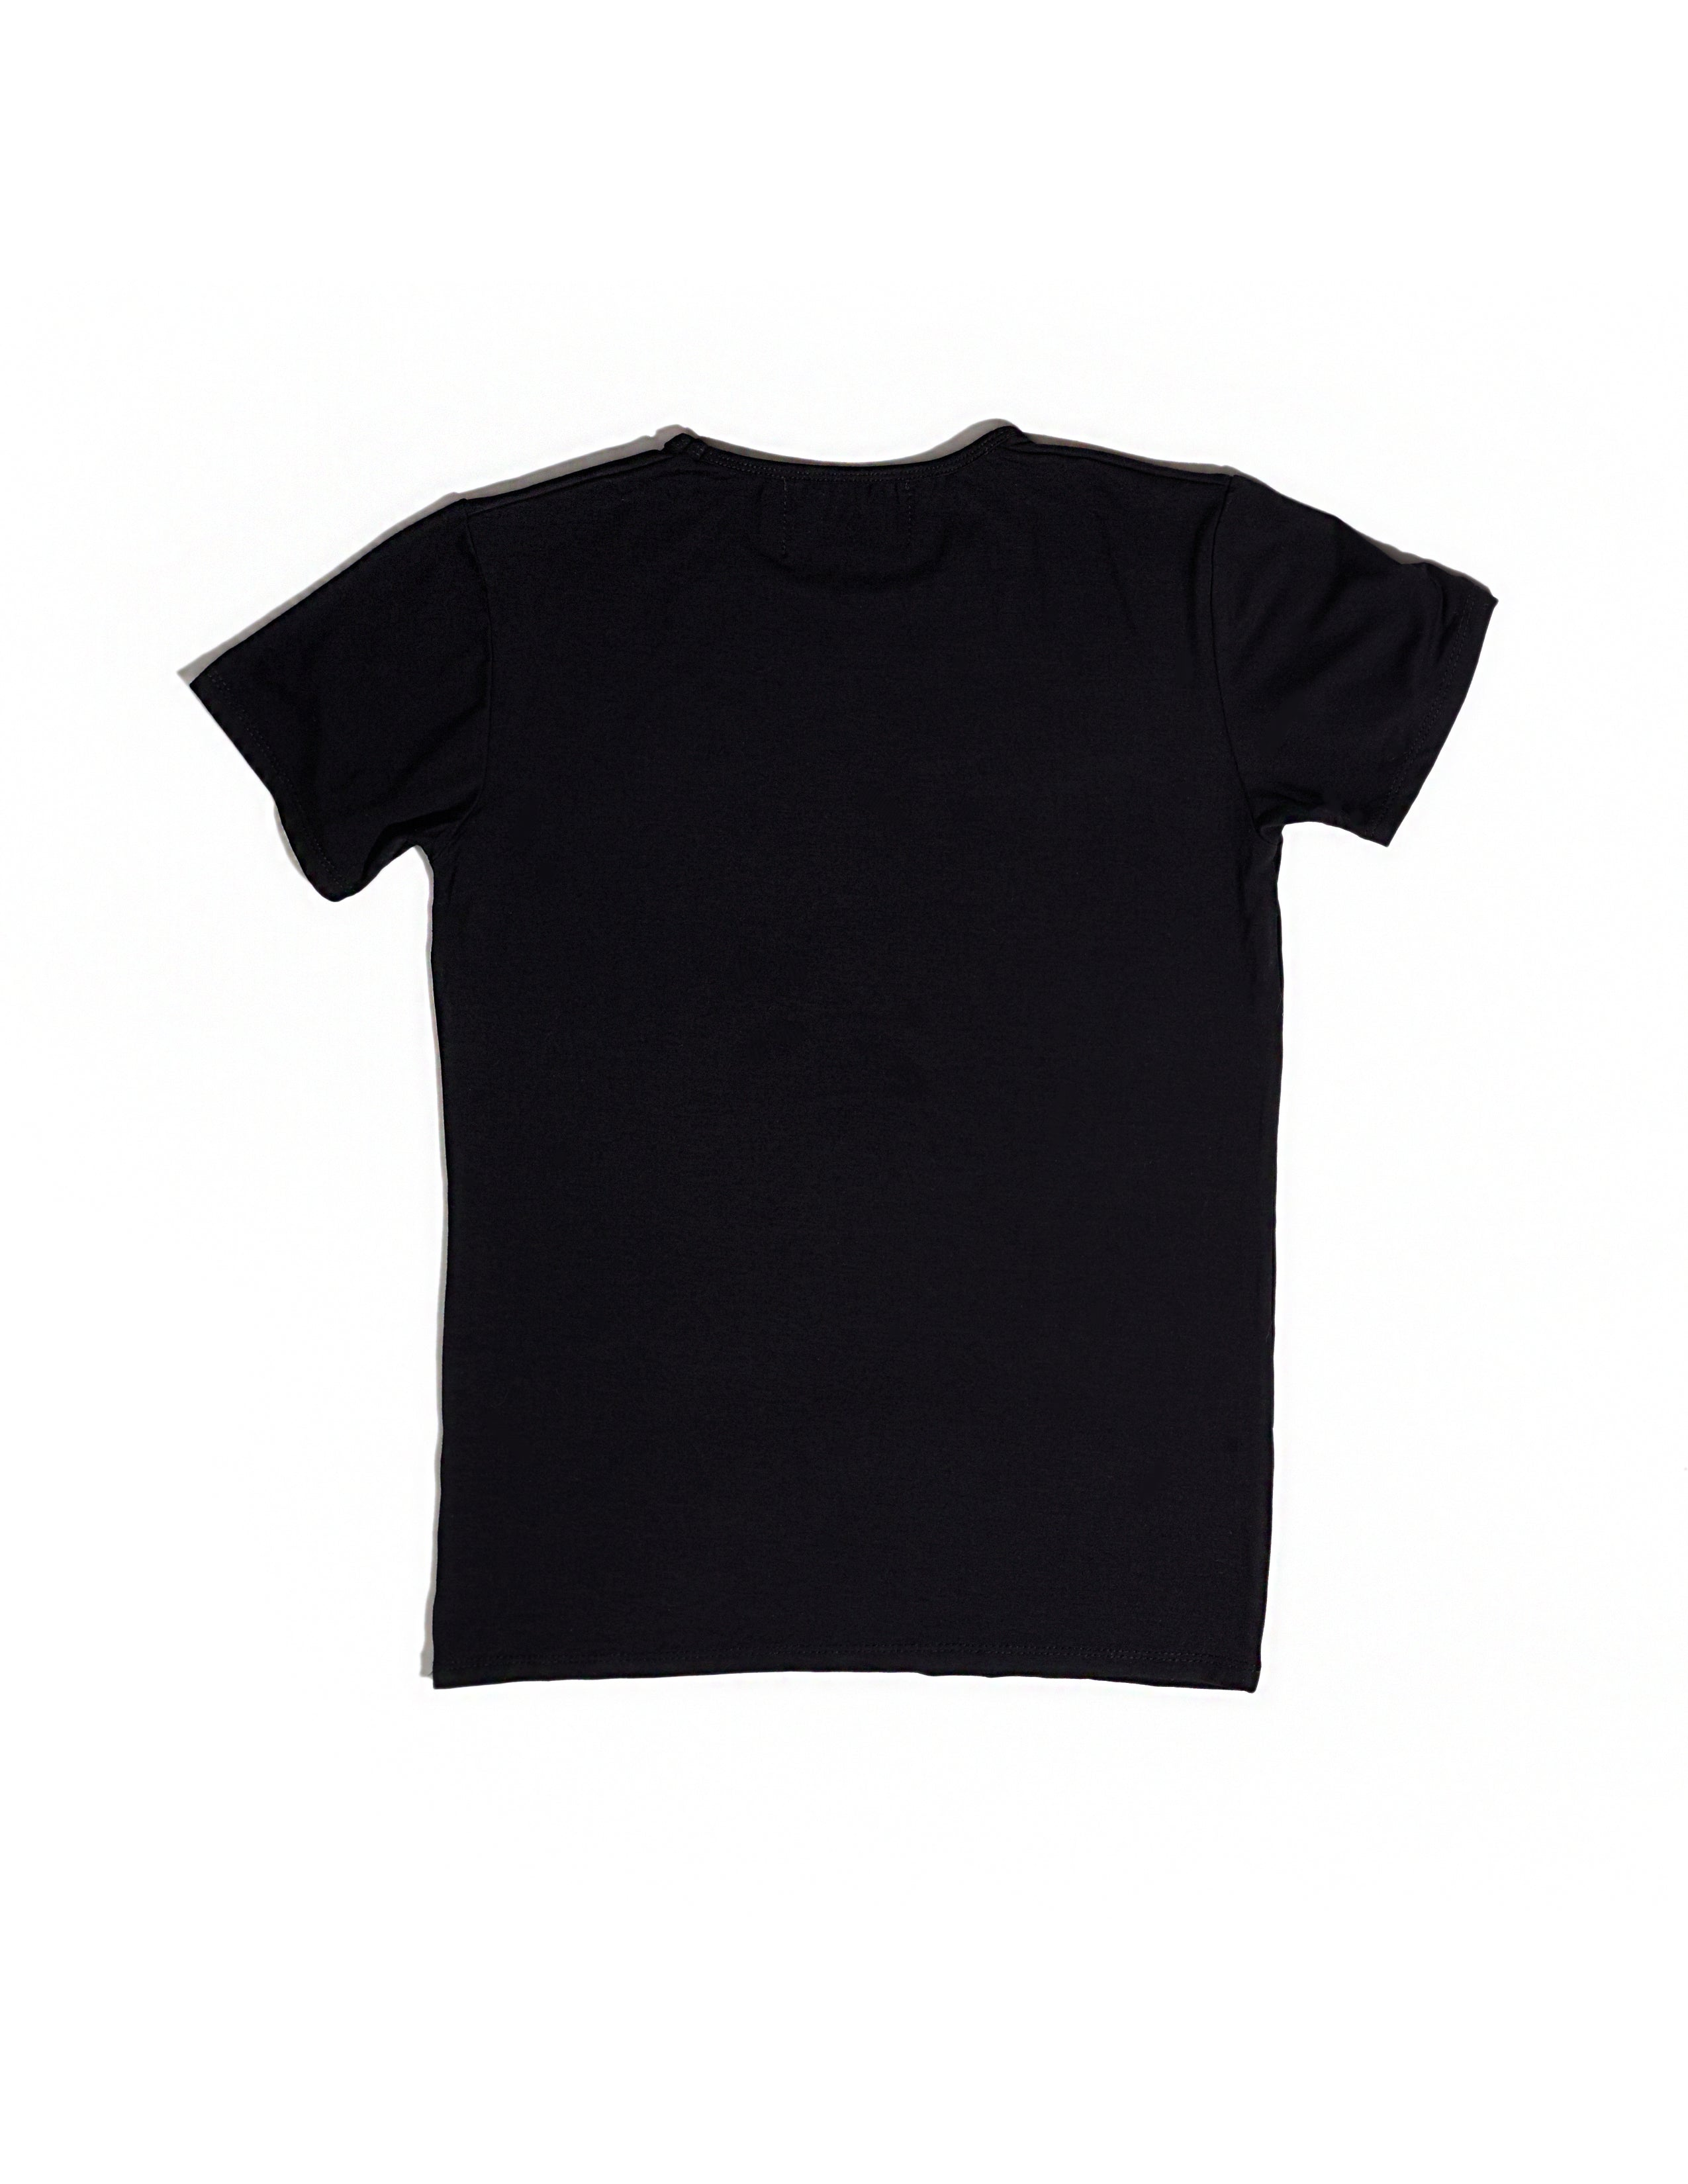 Antibacterial Black Top